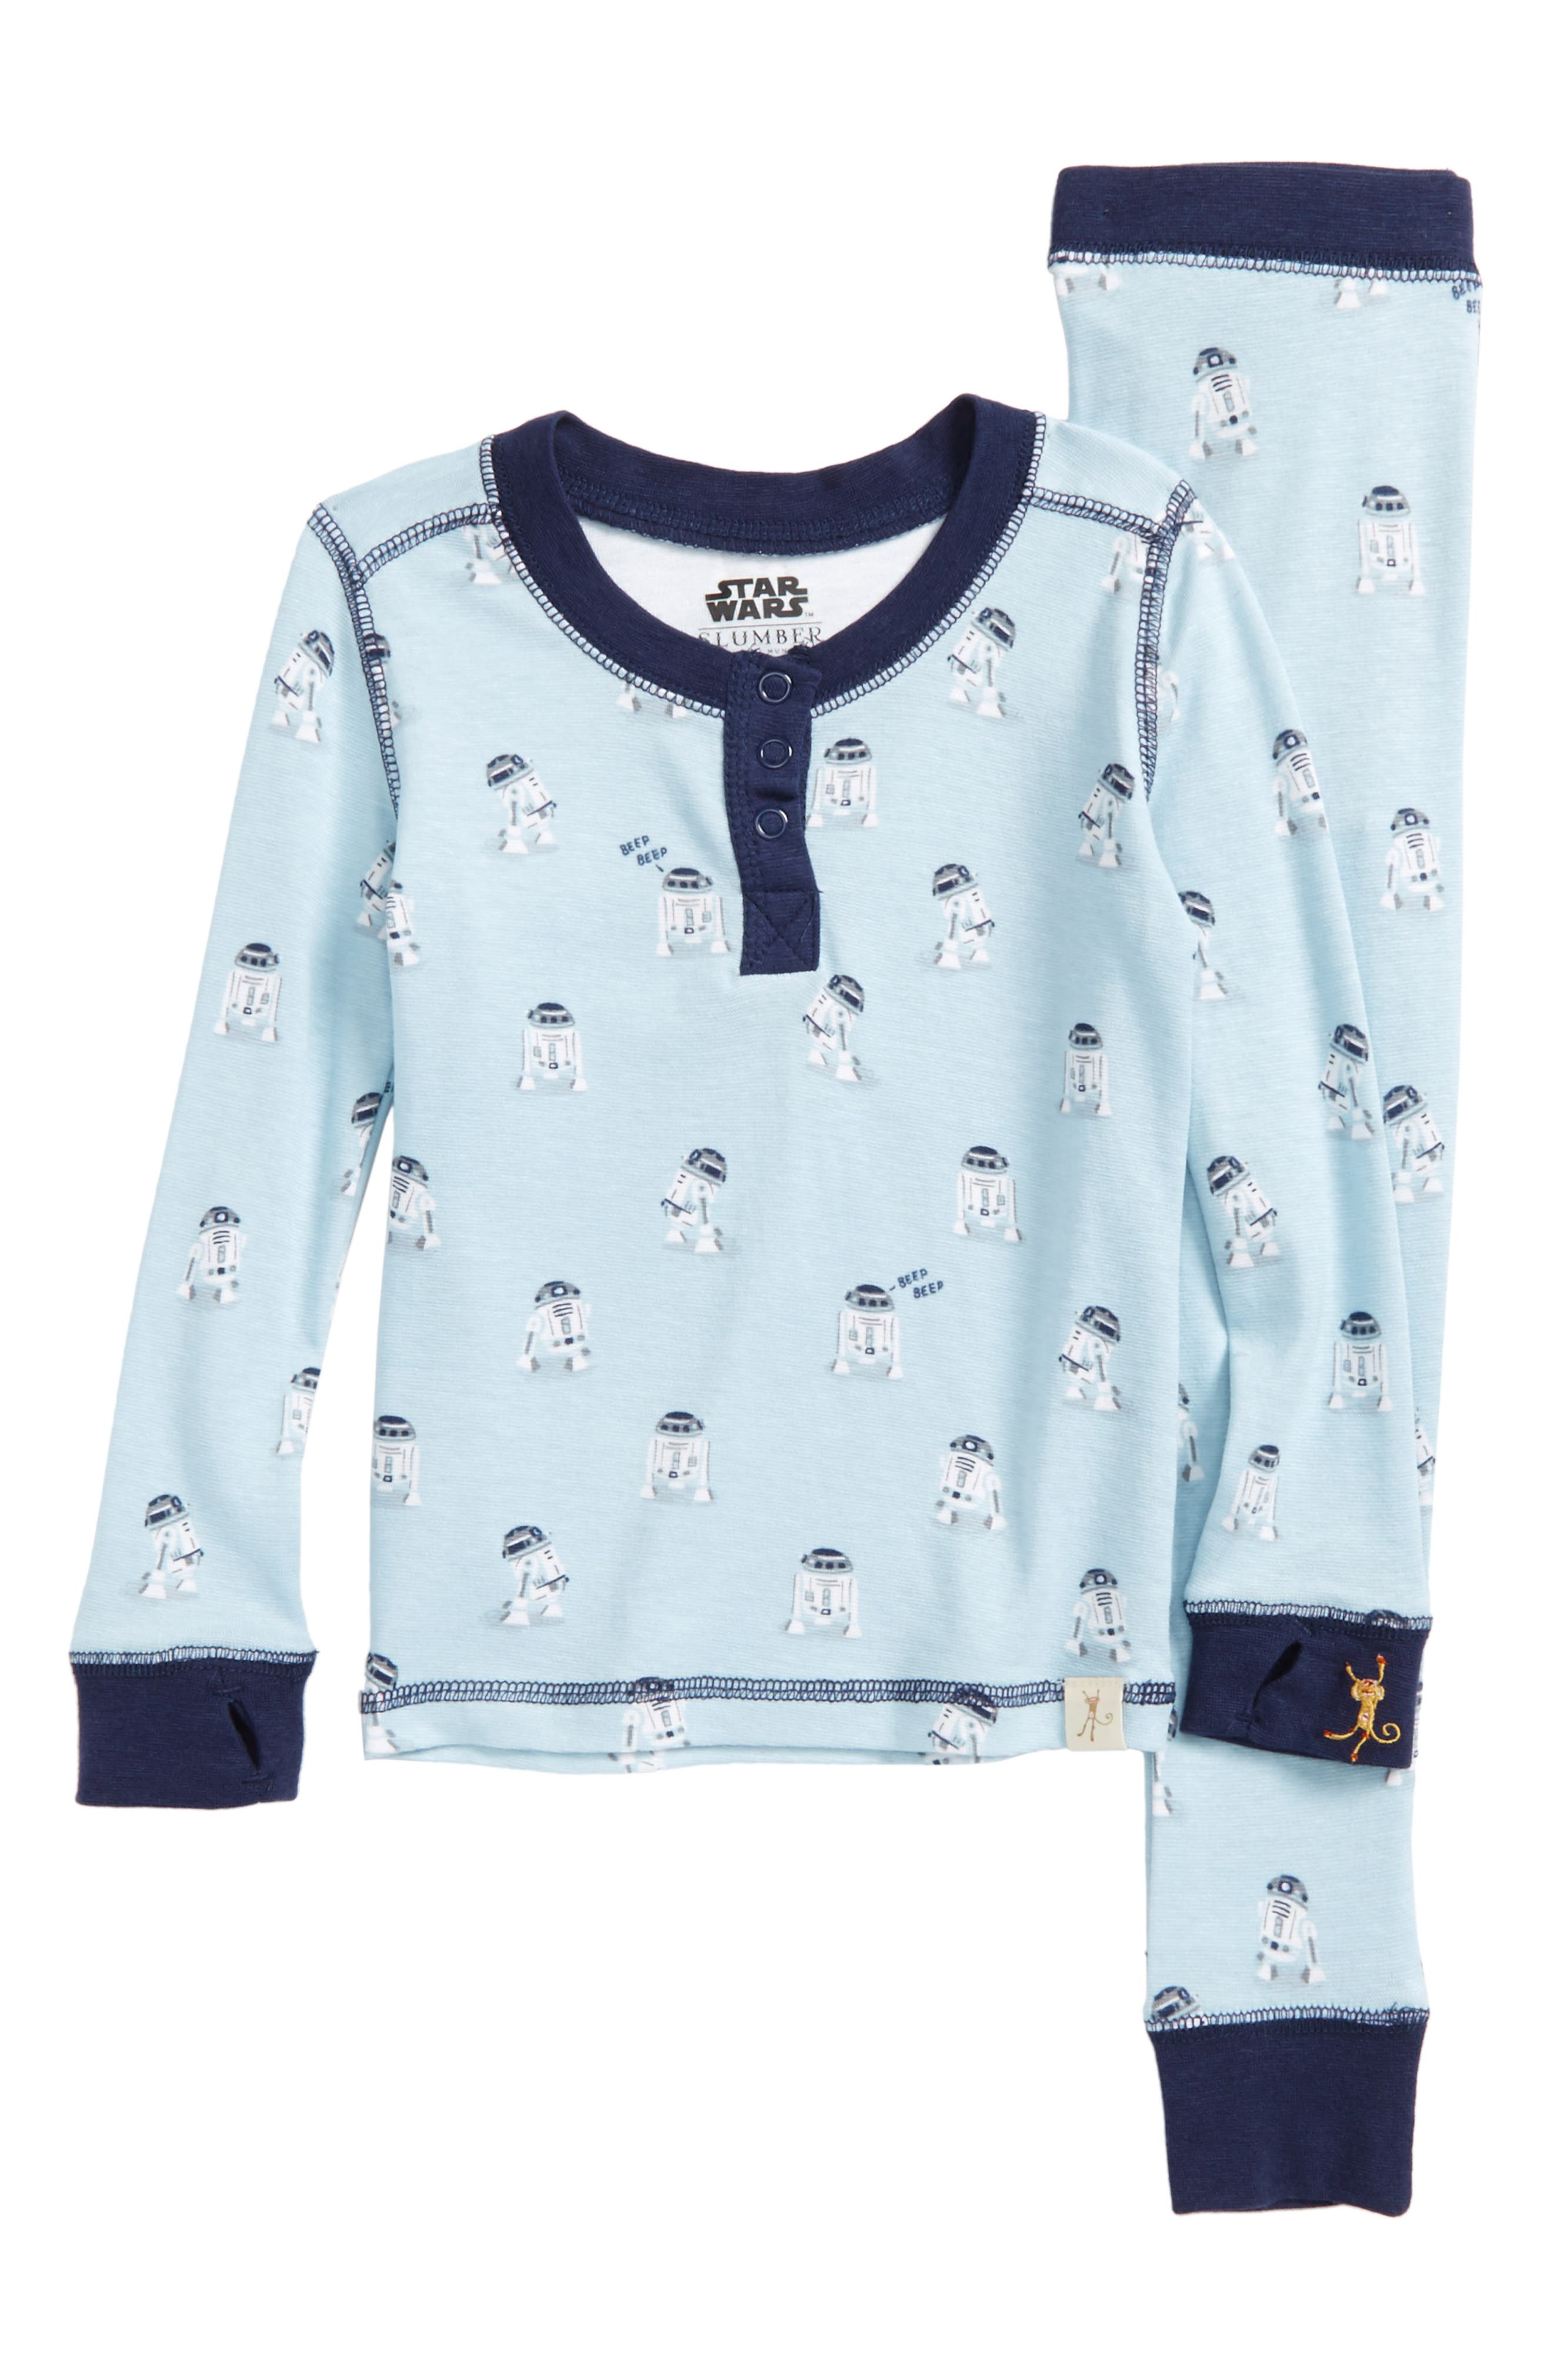 Star Wars<sup>™</sup> - R2-D2 Fitted Two-Piece Pajamas,                         Main,                         color, Light Grey R2d2